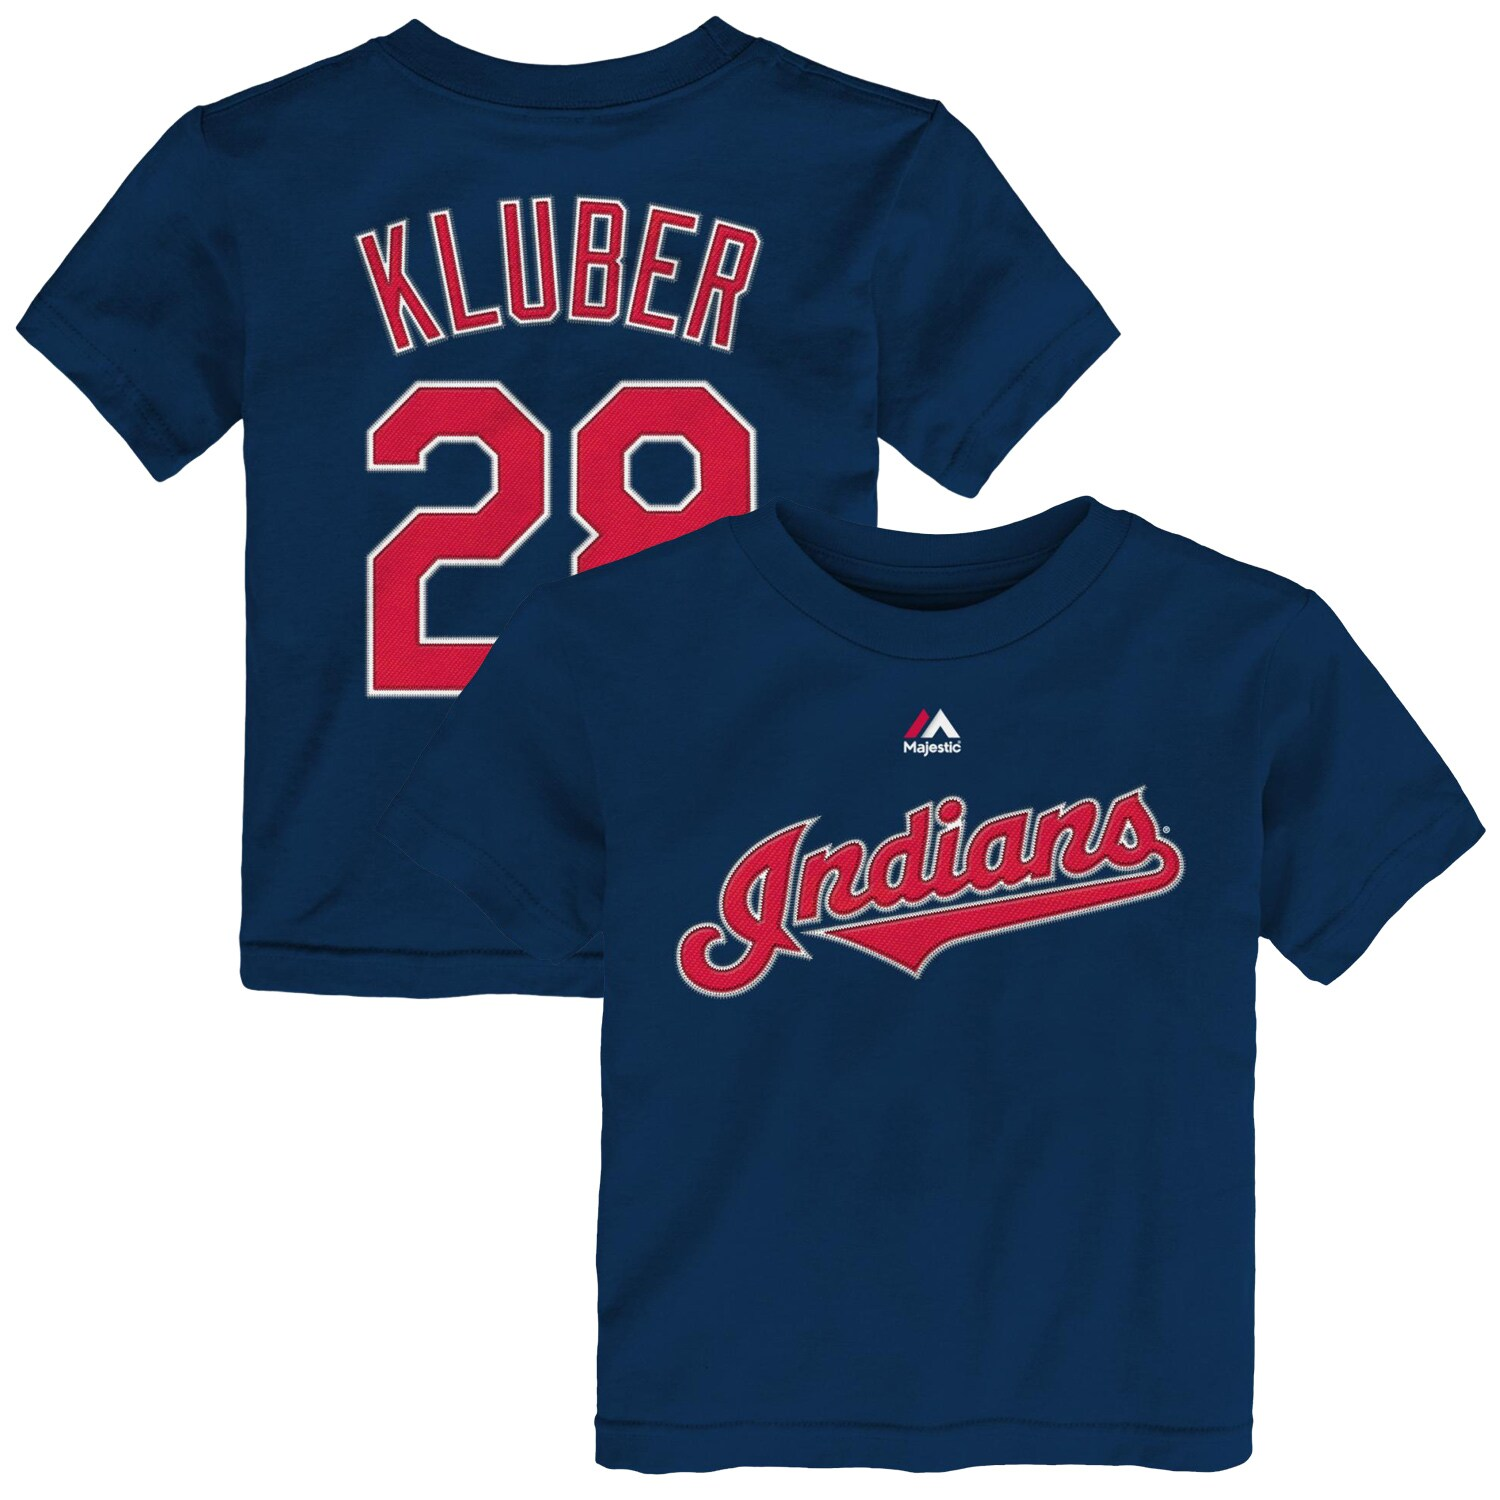 Corey Kluber Cleveland Indians Majestic Toddler Player Name & Number T-Shirt - Navy